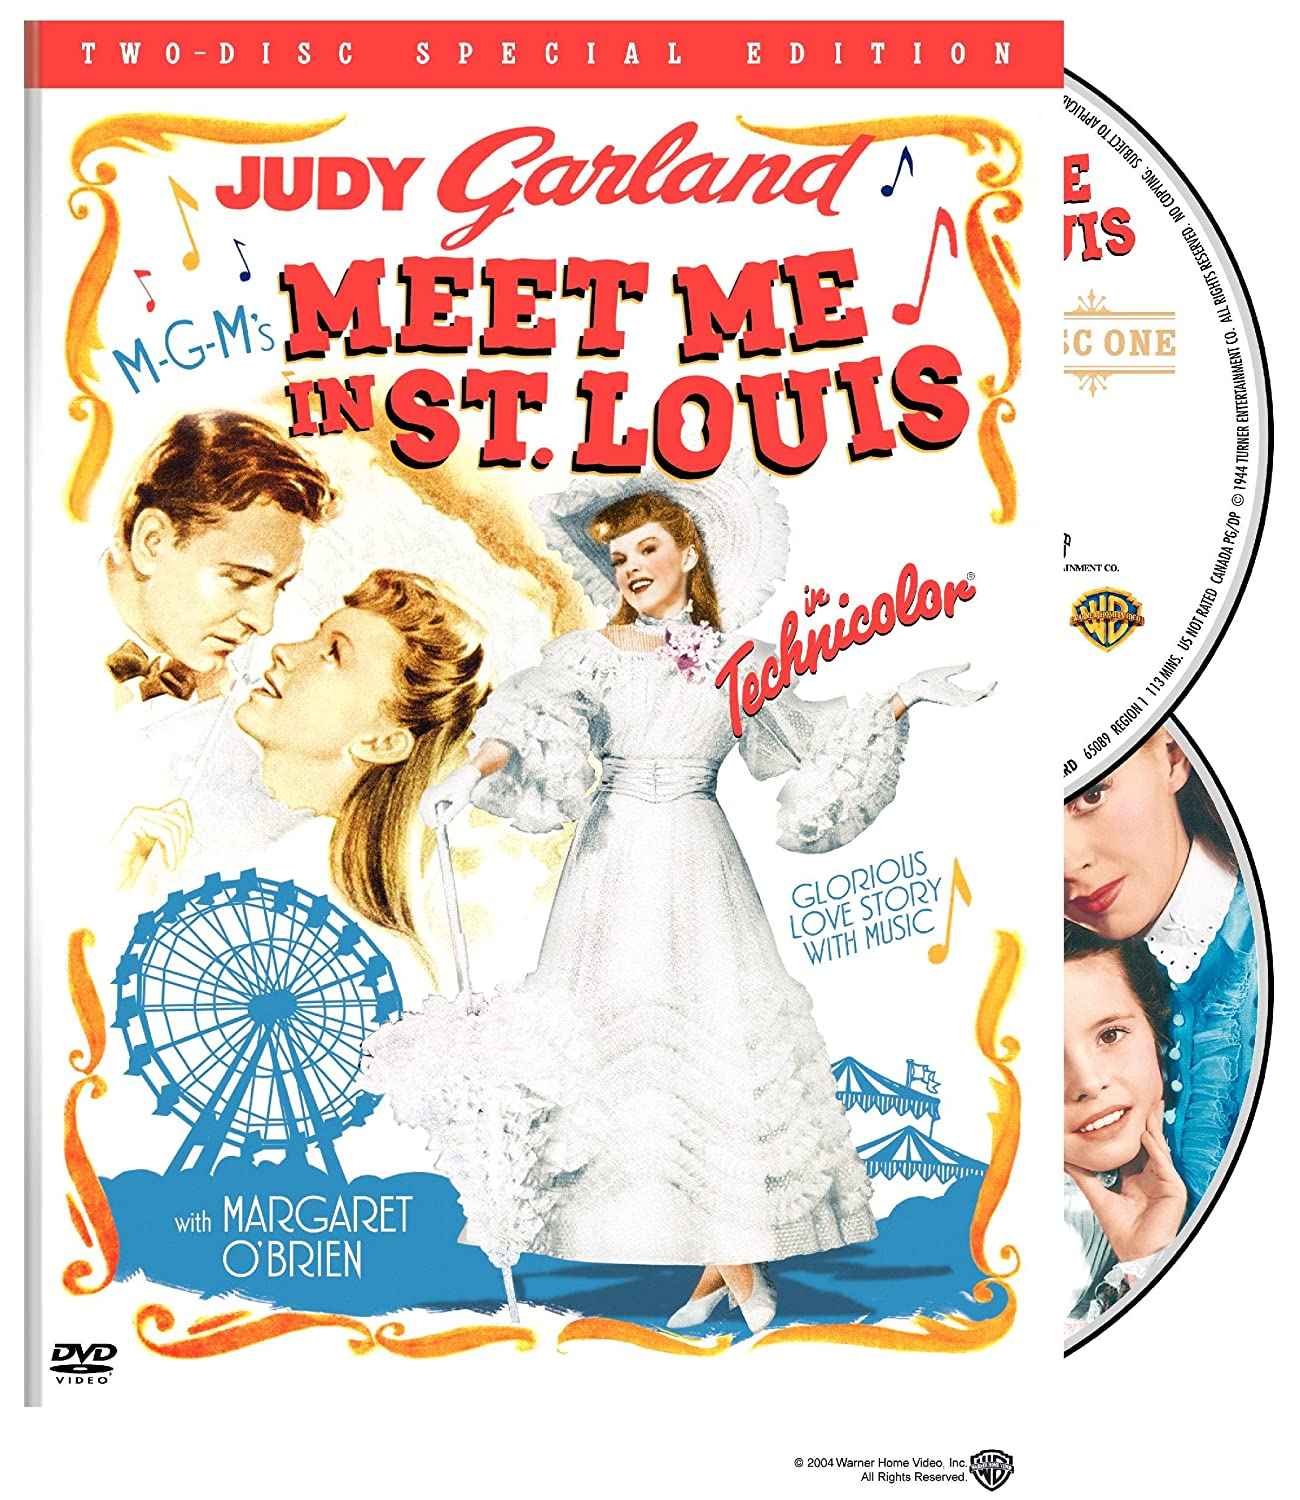 Amazon.com: Meet Me In St. Louis (Two-Disc Special Edition): Judy ...